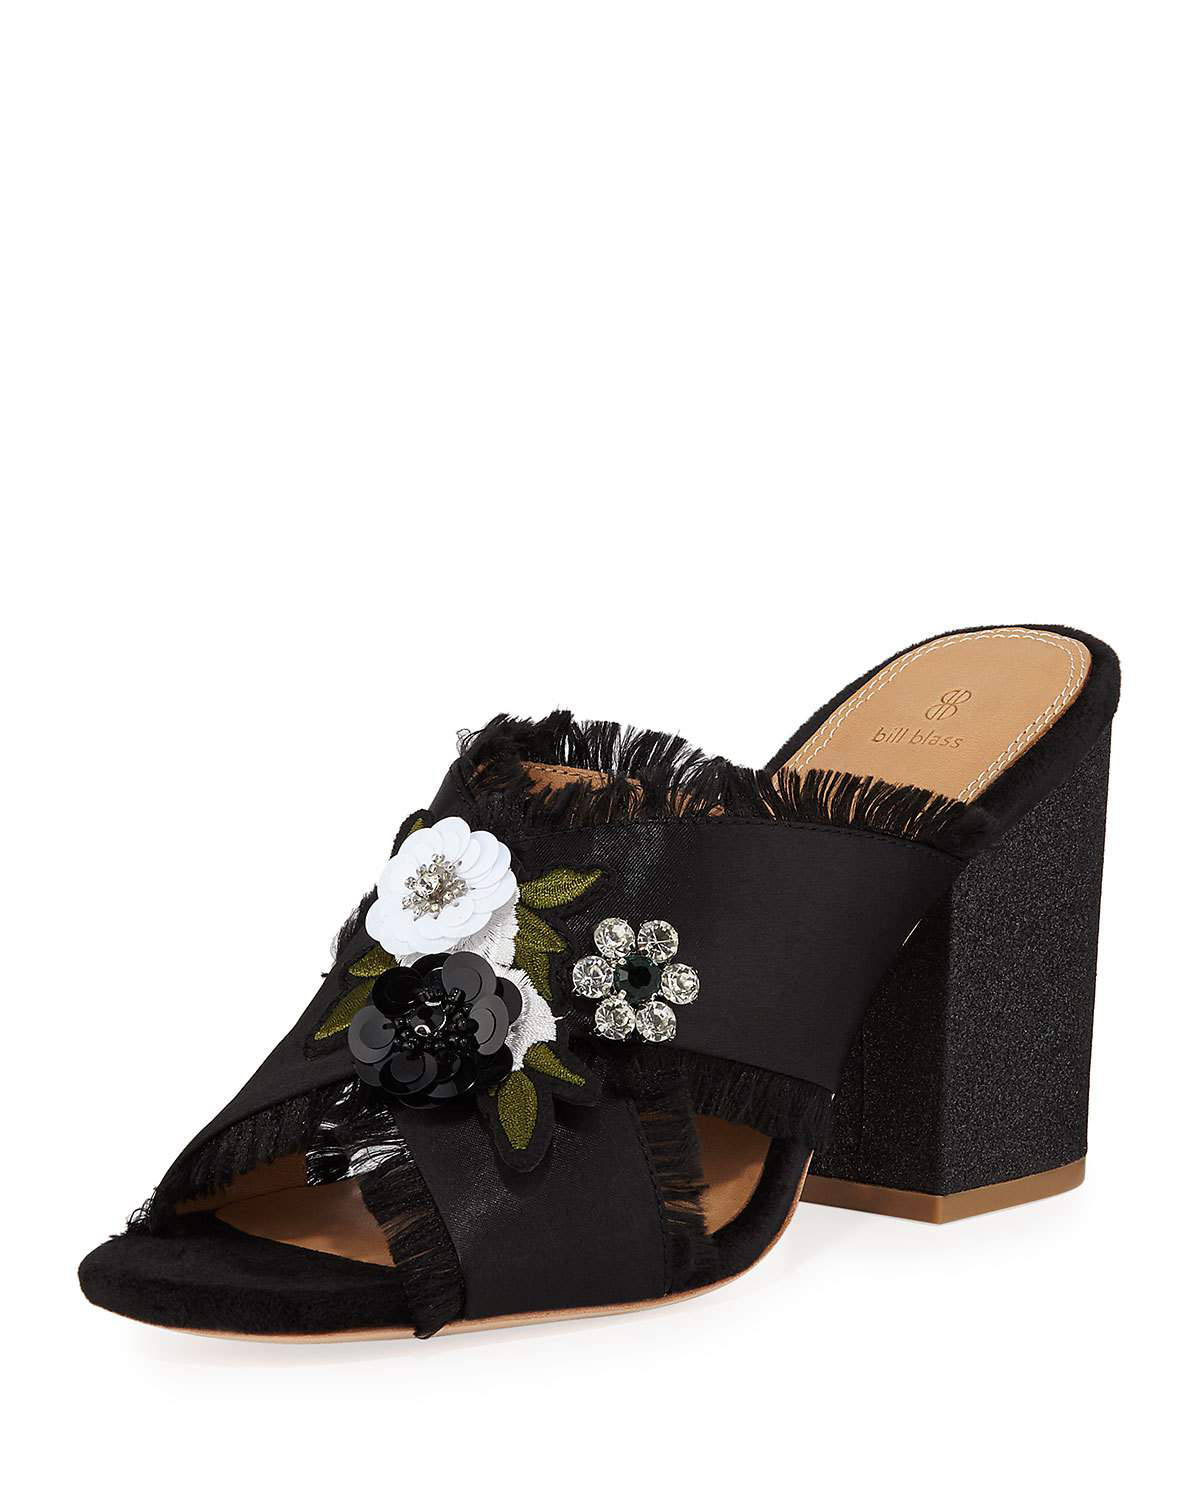 Bill Blass Carol Satin Embellished Mules, Black